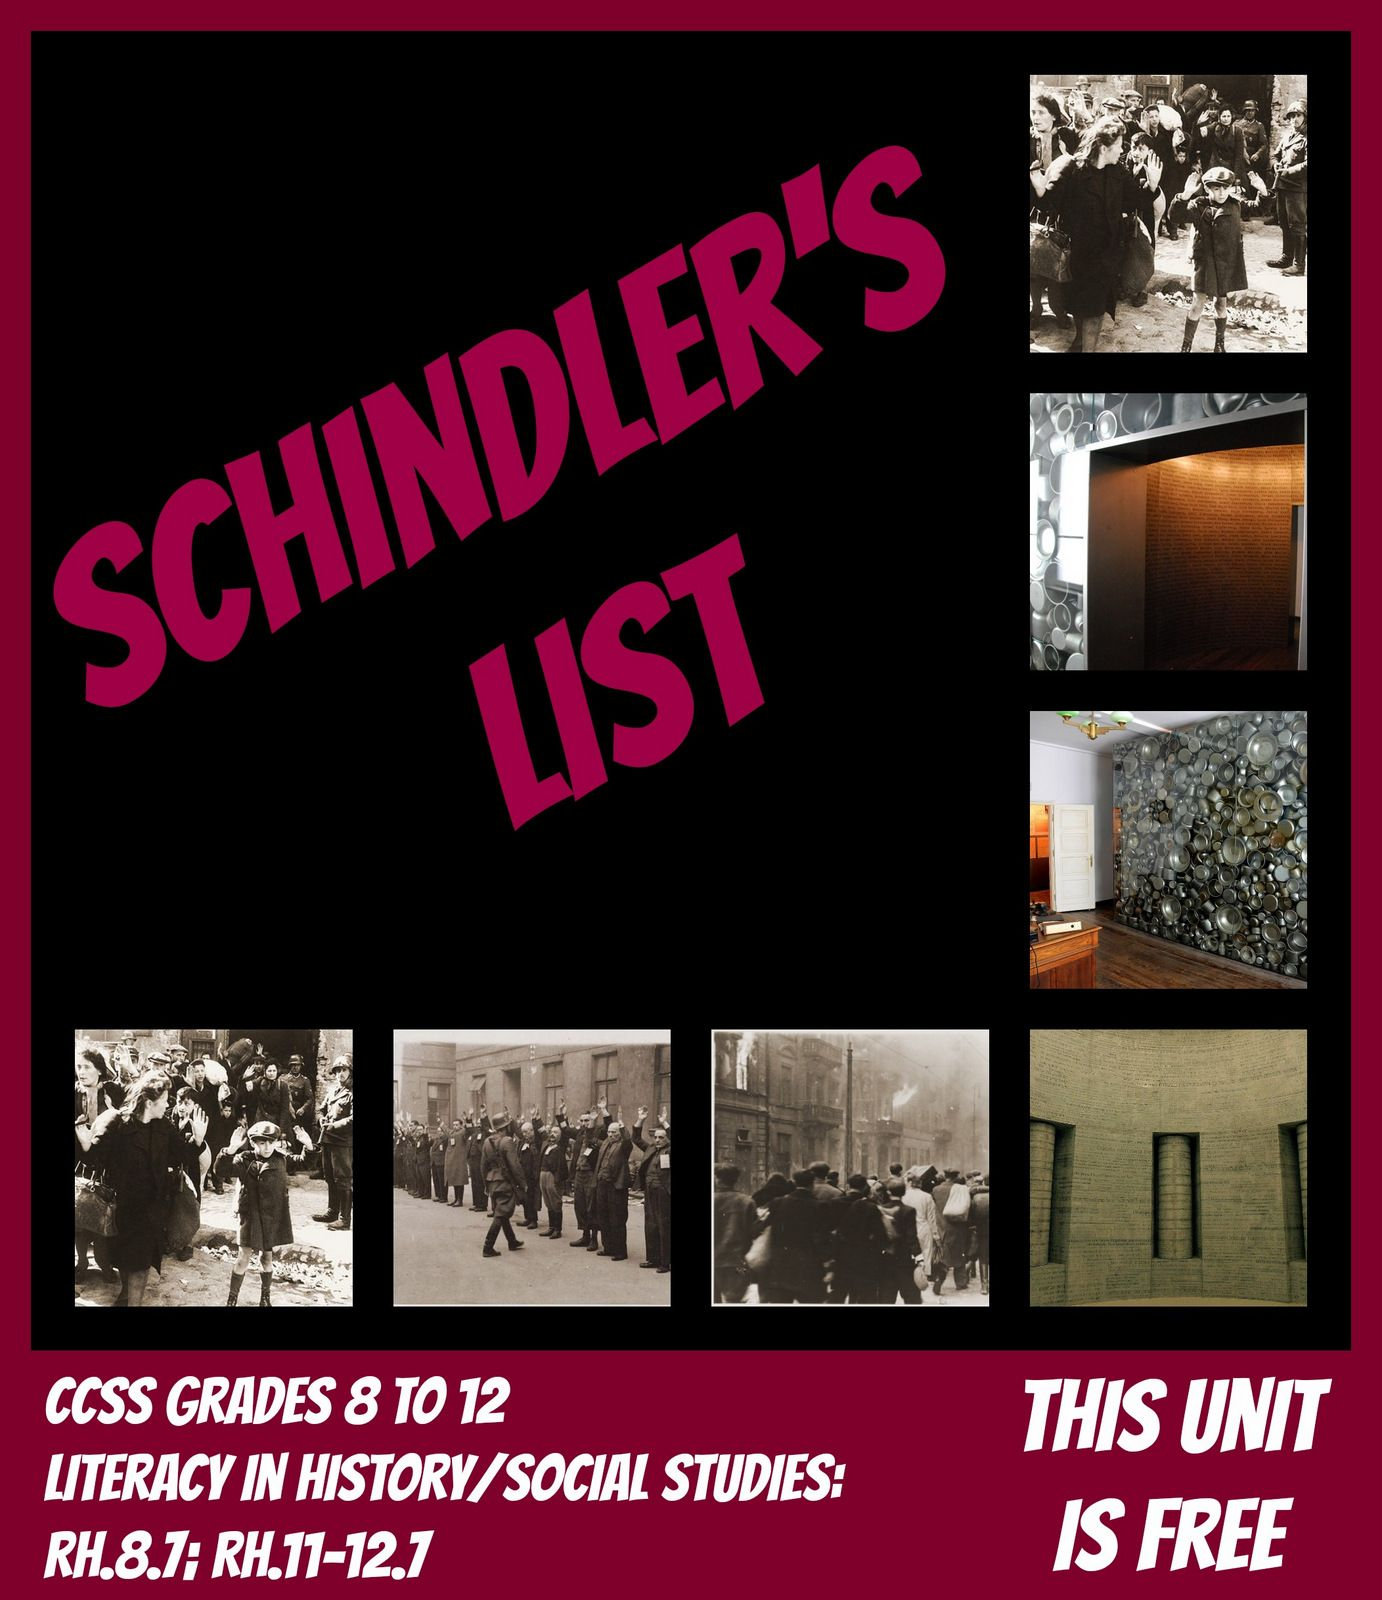 Schindler S List Free Unit